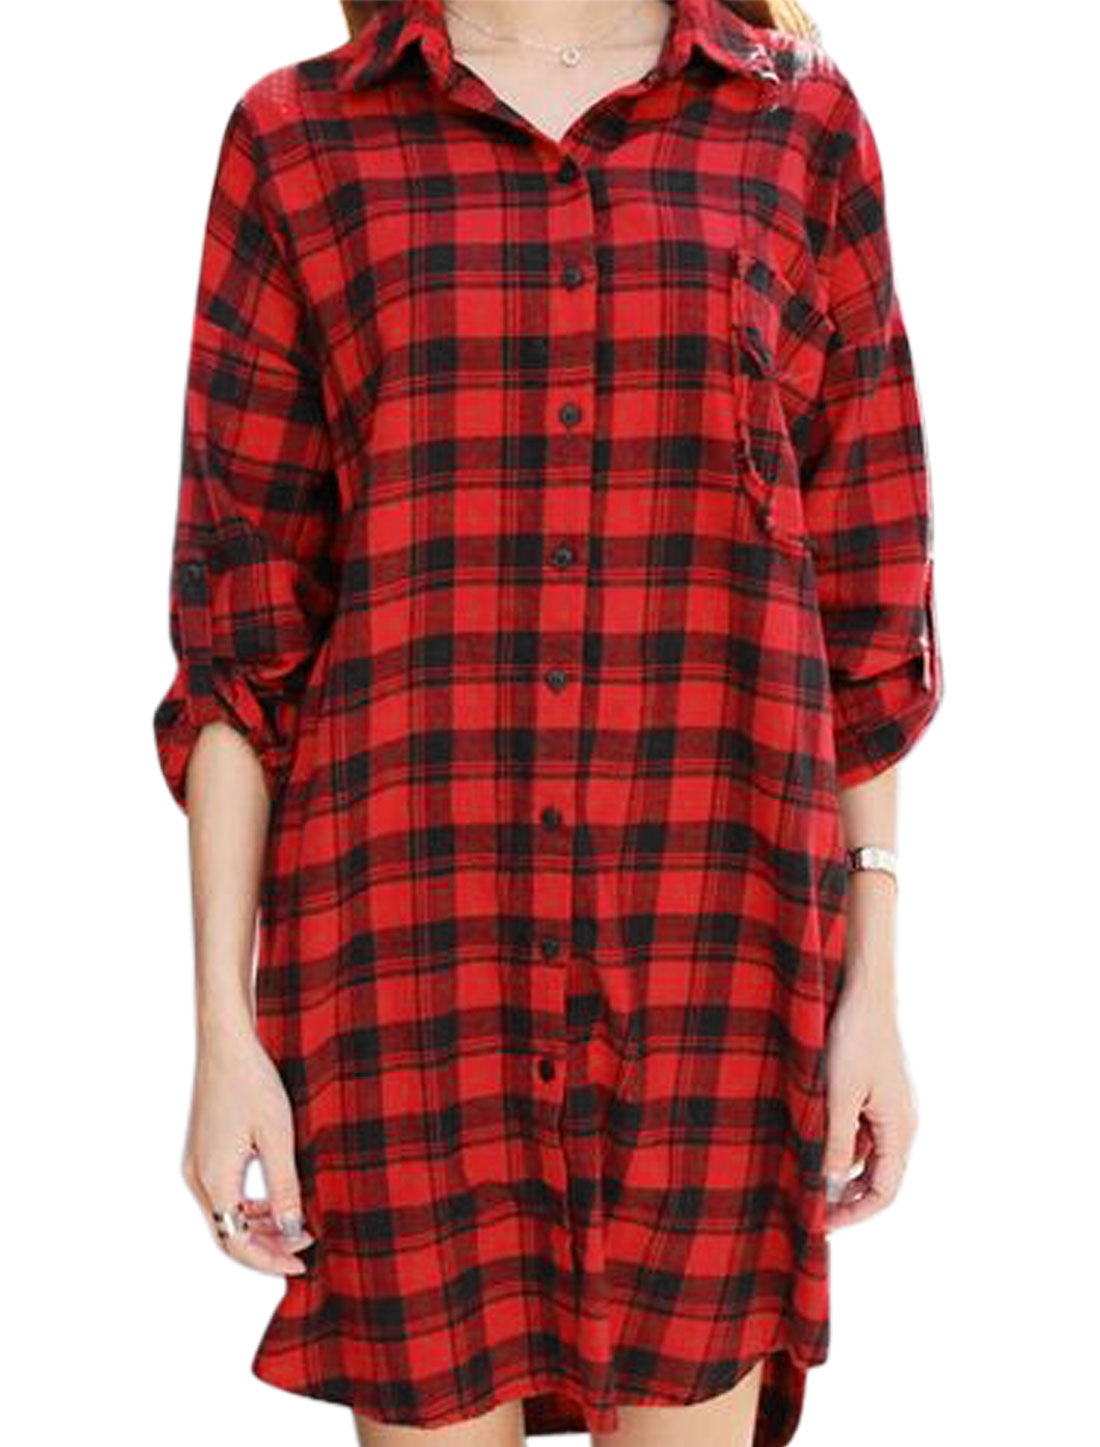 Lady Long Sleeves Plaids Pattern Single Breasted High Low Hem Tunic Shirt Red XS